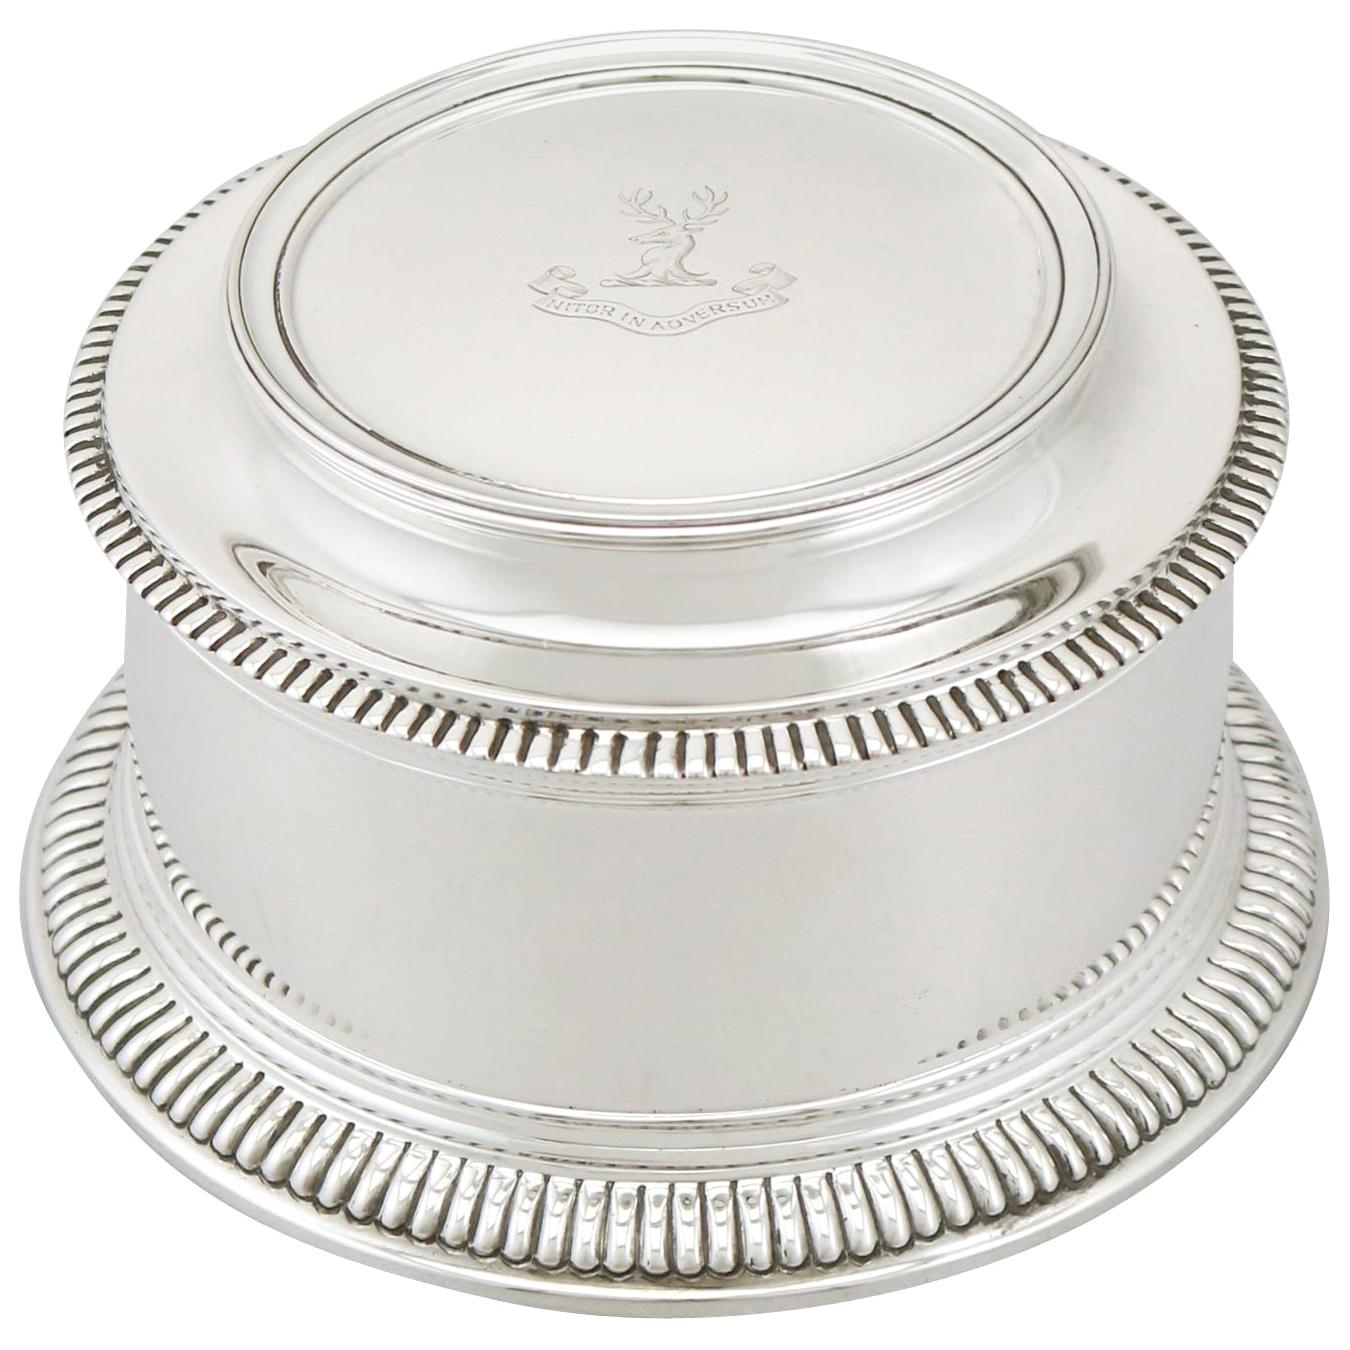 20th Century Antique Sterling Silver Box by Mappin & Webb Ltd